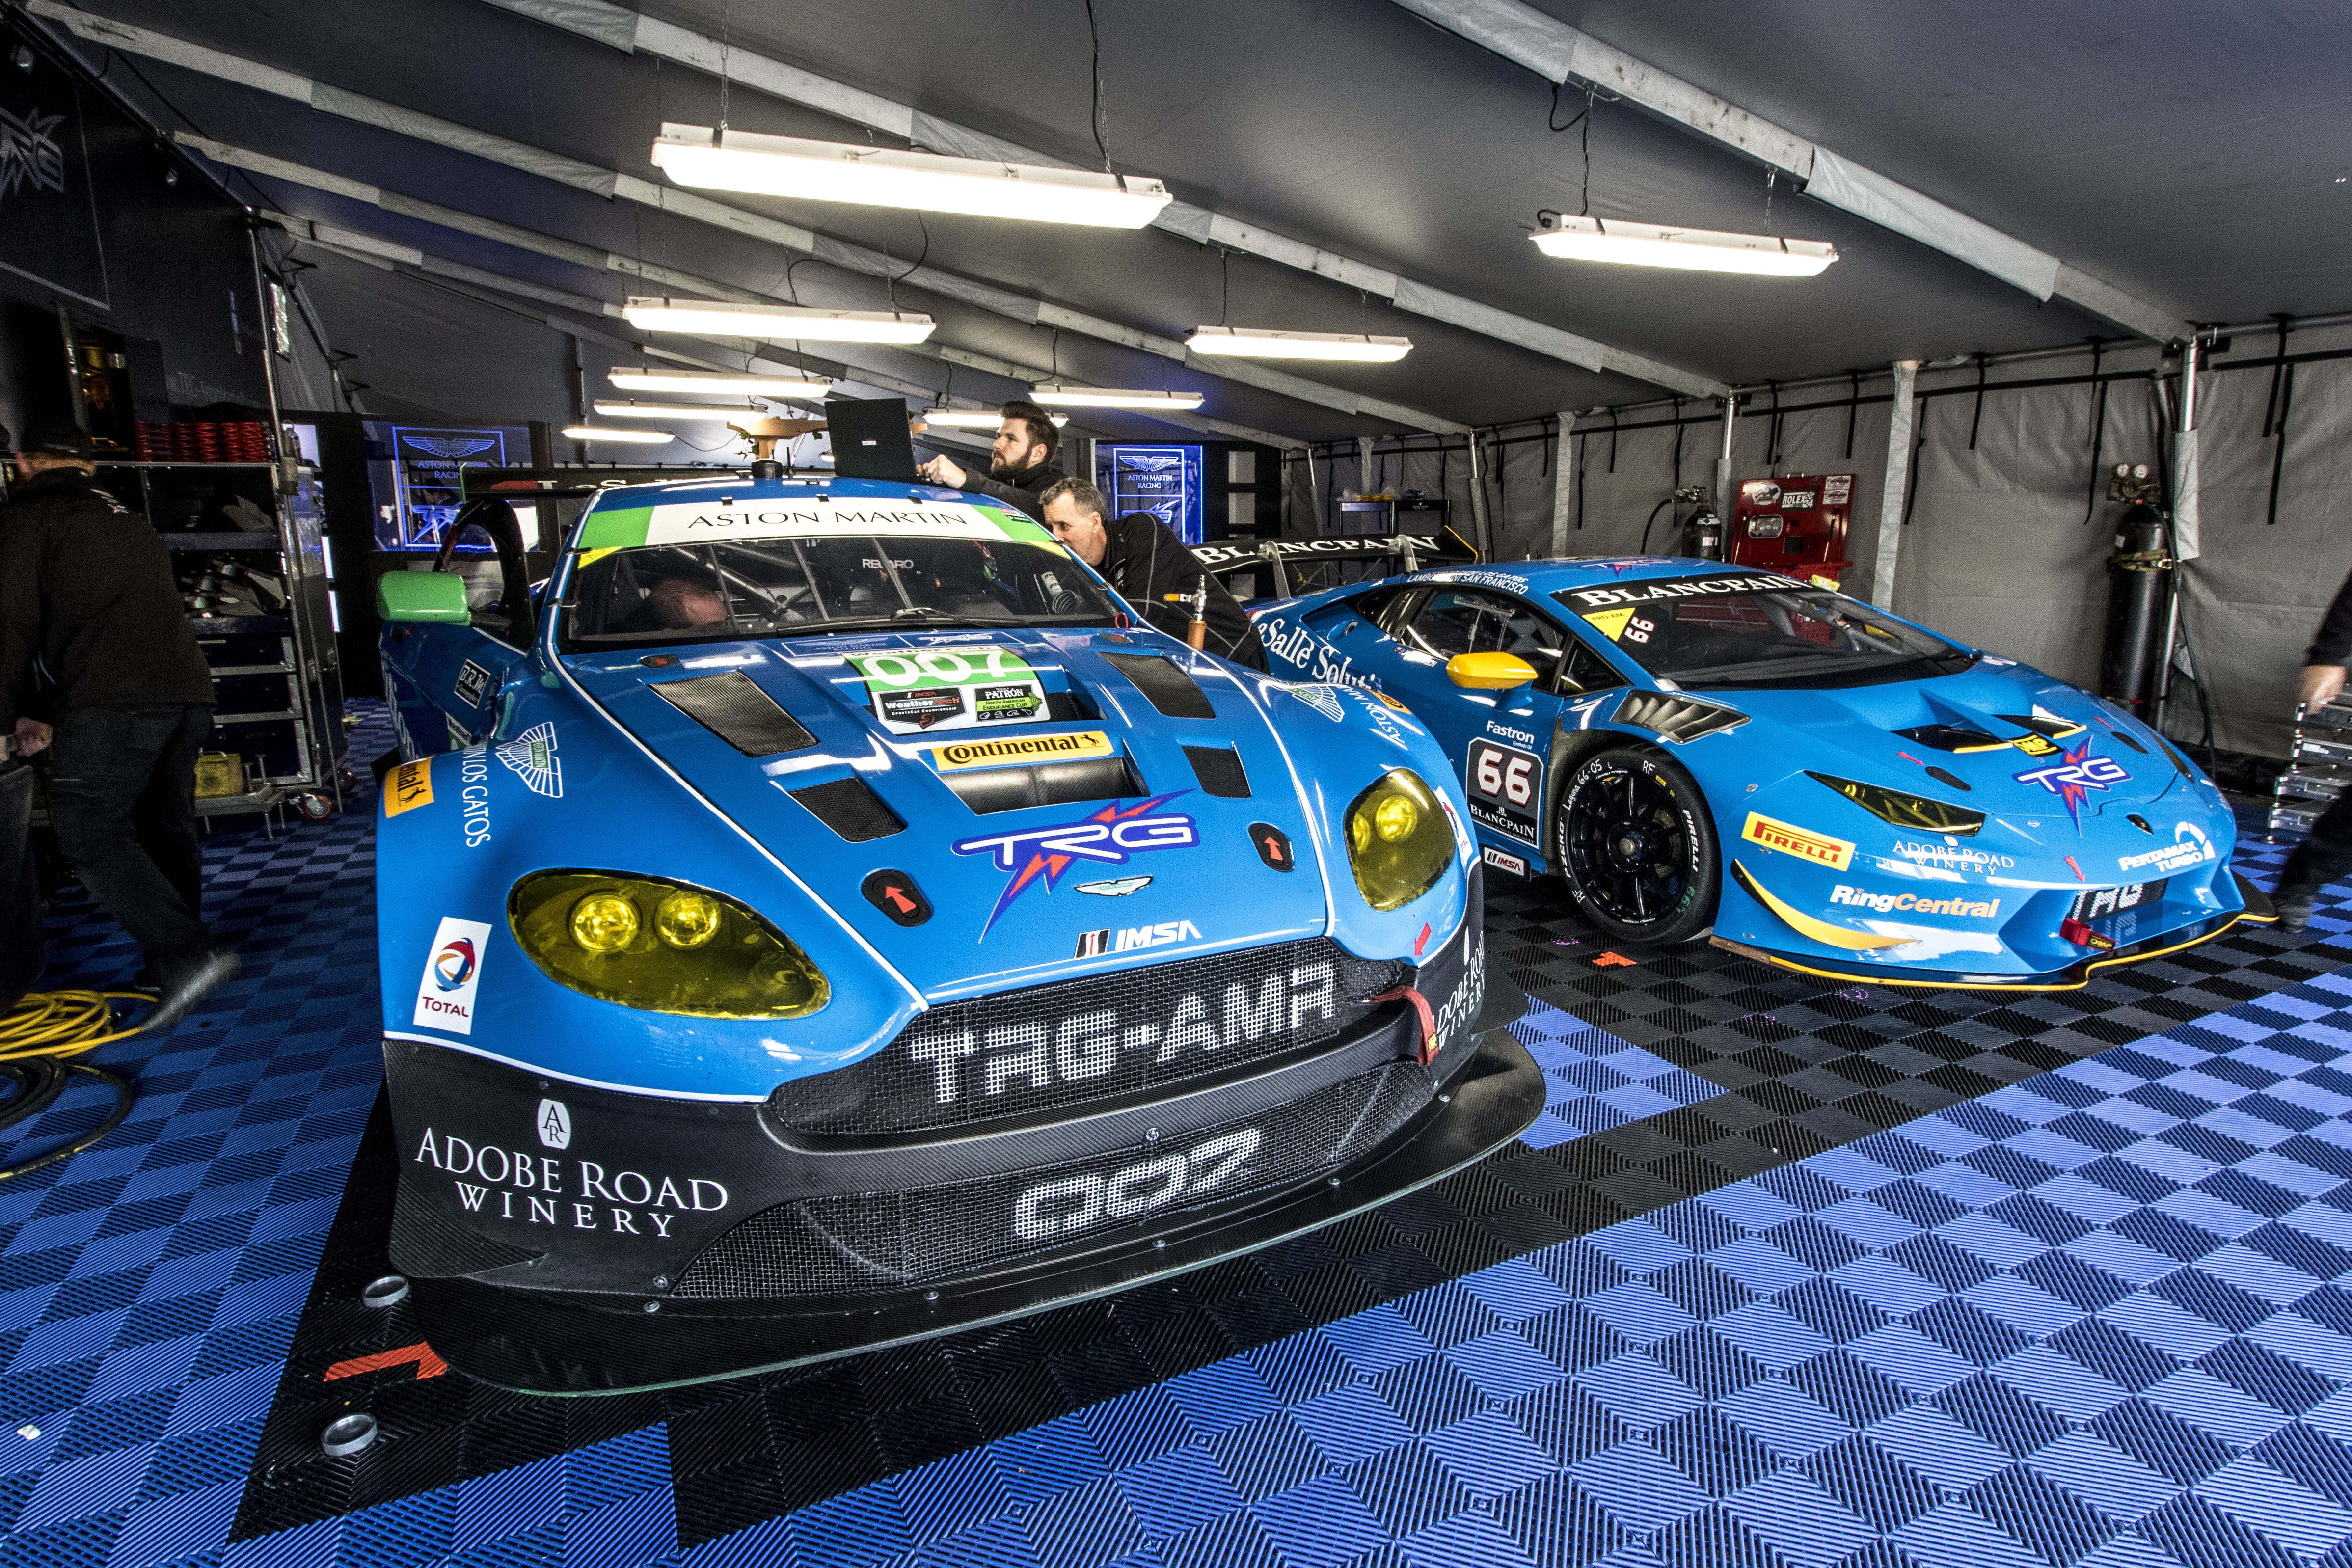 TRG Takes Double Podiums with Aston Martin and Lamborghini at Laguna Seca Raceway